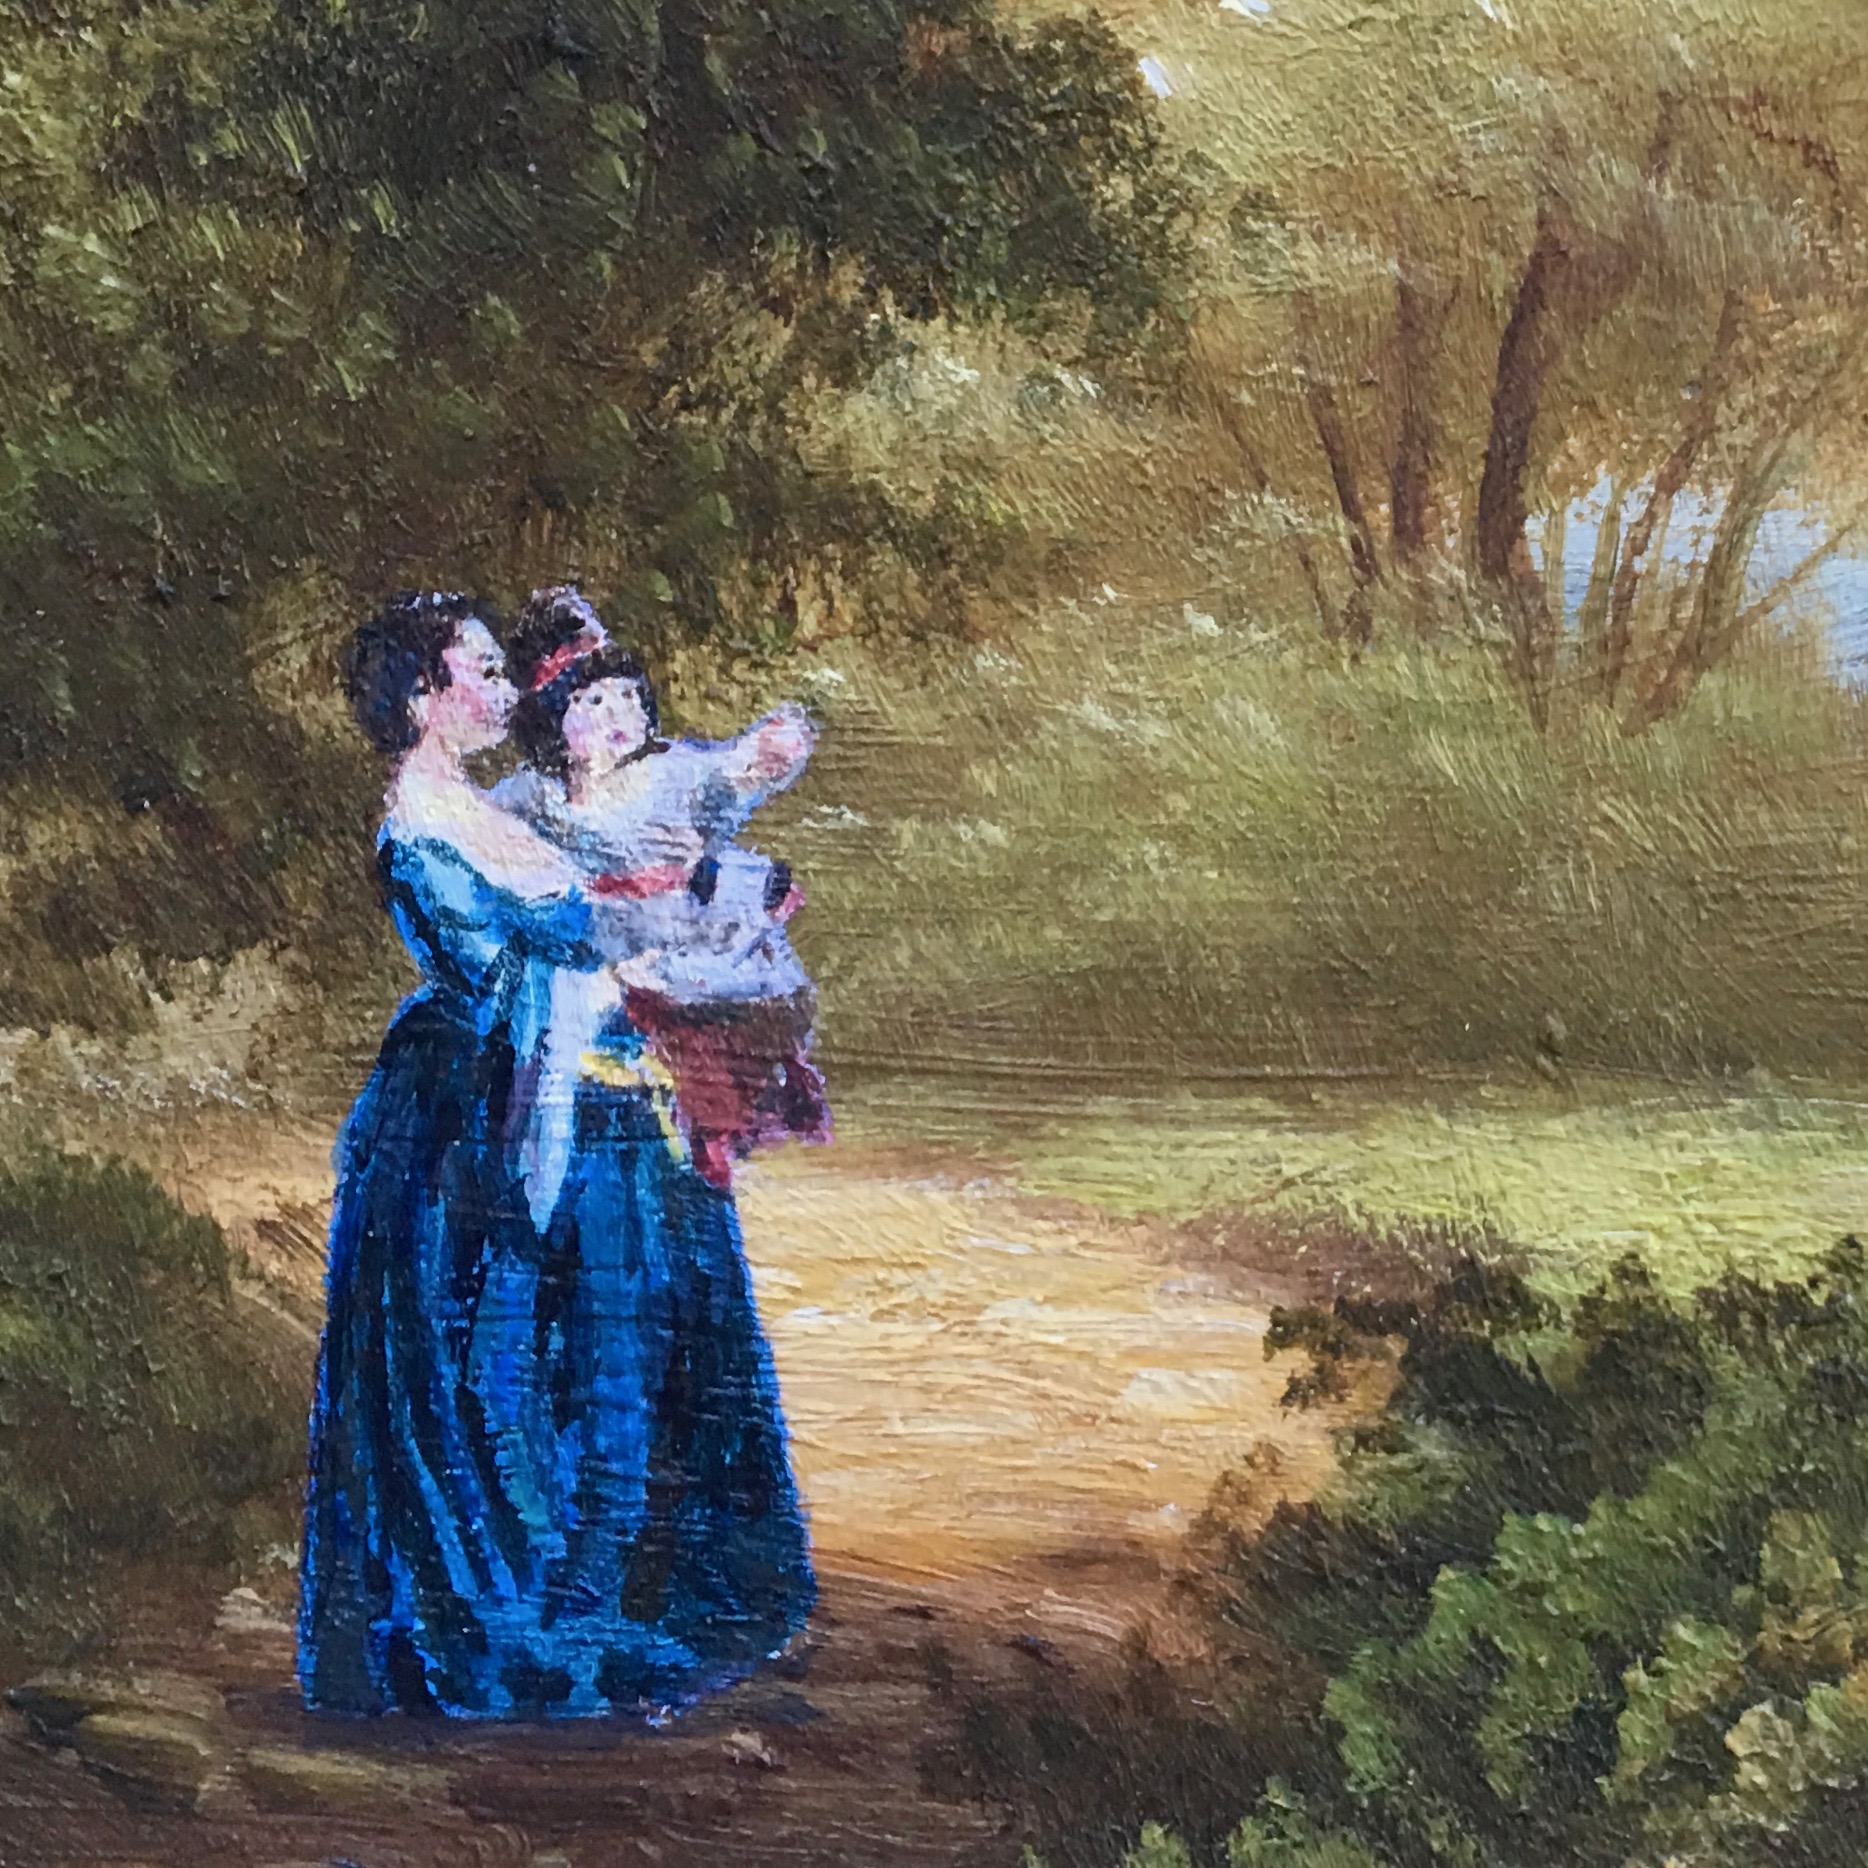 Woman with baby in blue dress, Anka Hui, Kira Findley